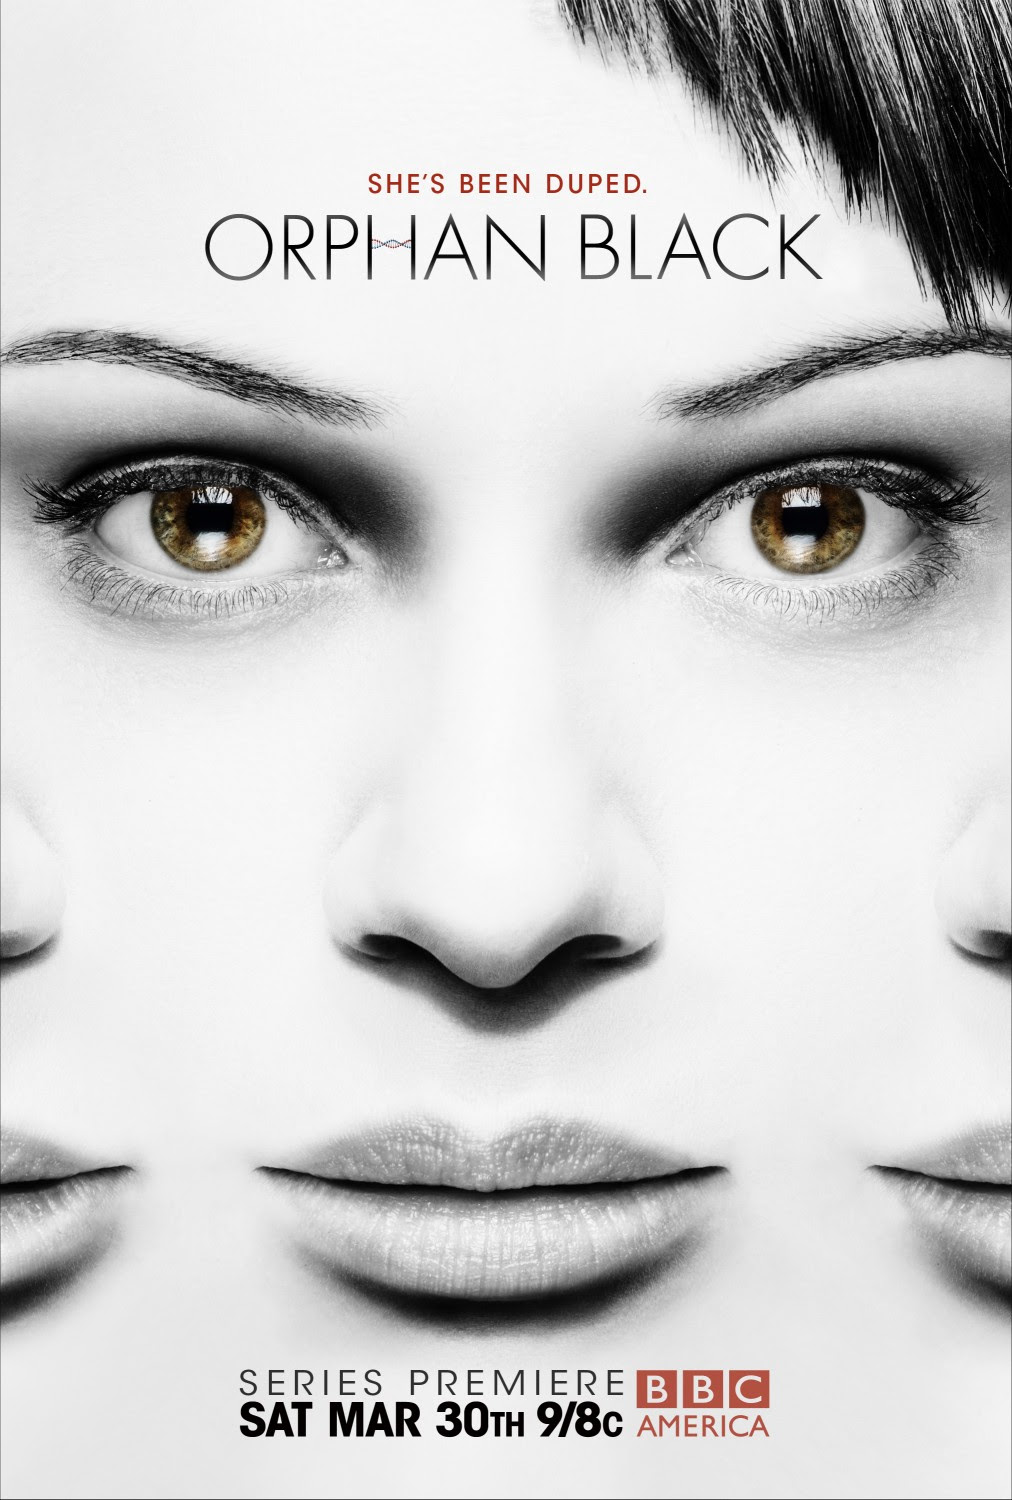 Extra Large Movie Poster Image for Orphan Black